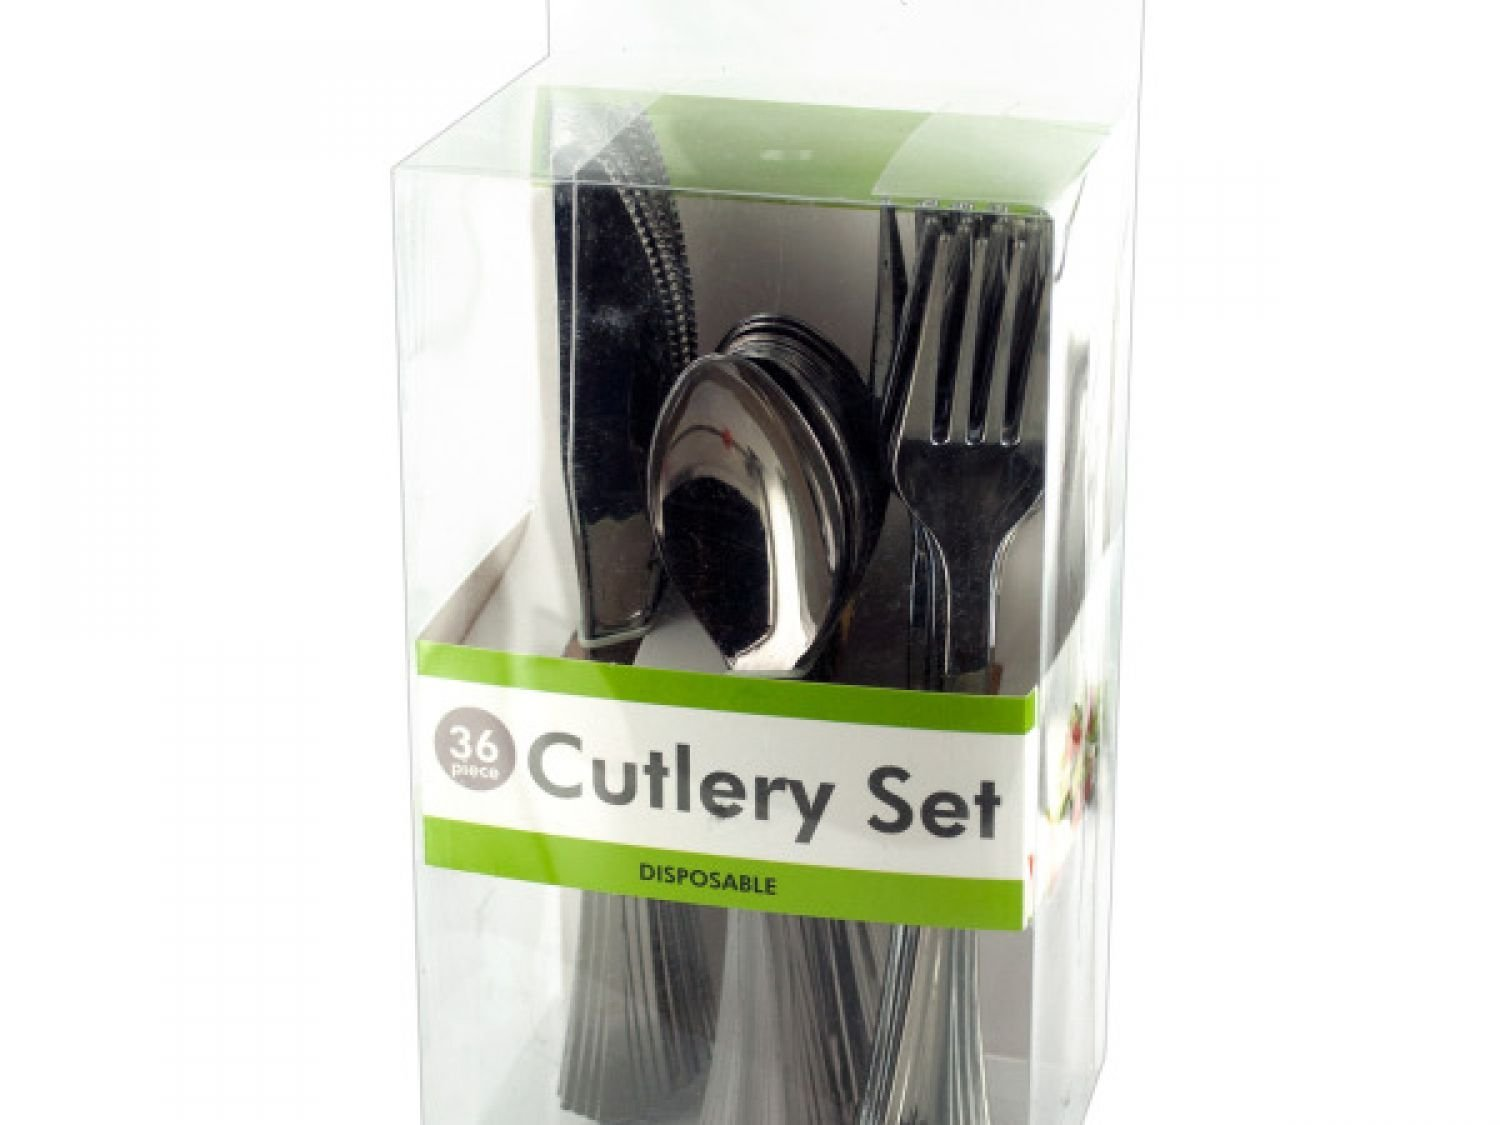 Disposable Silver Plastic Cutlery Set - Set of 4, [Kitchen & Dining, Cutlery]